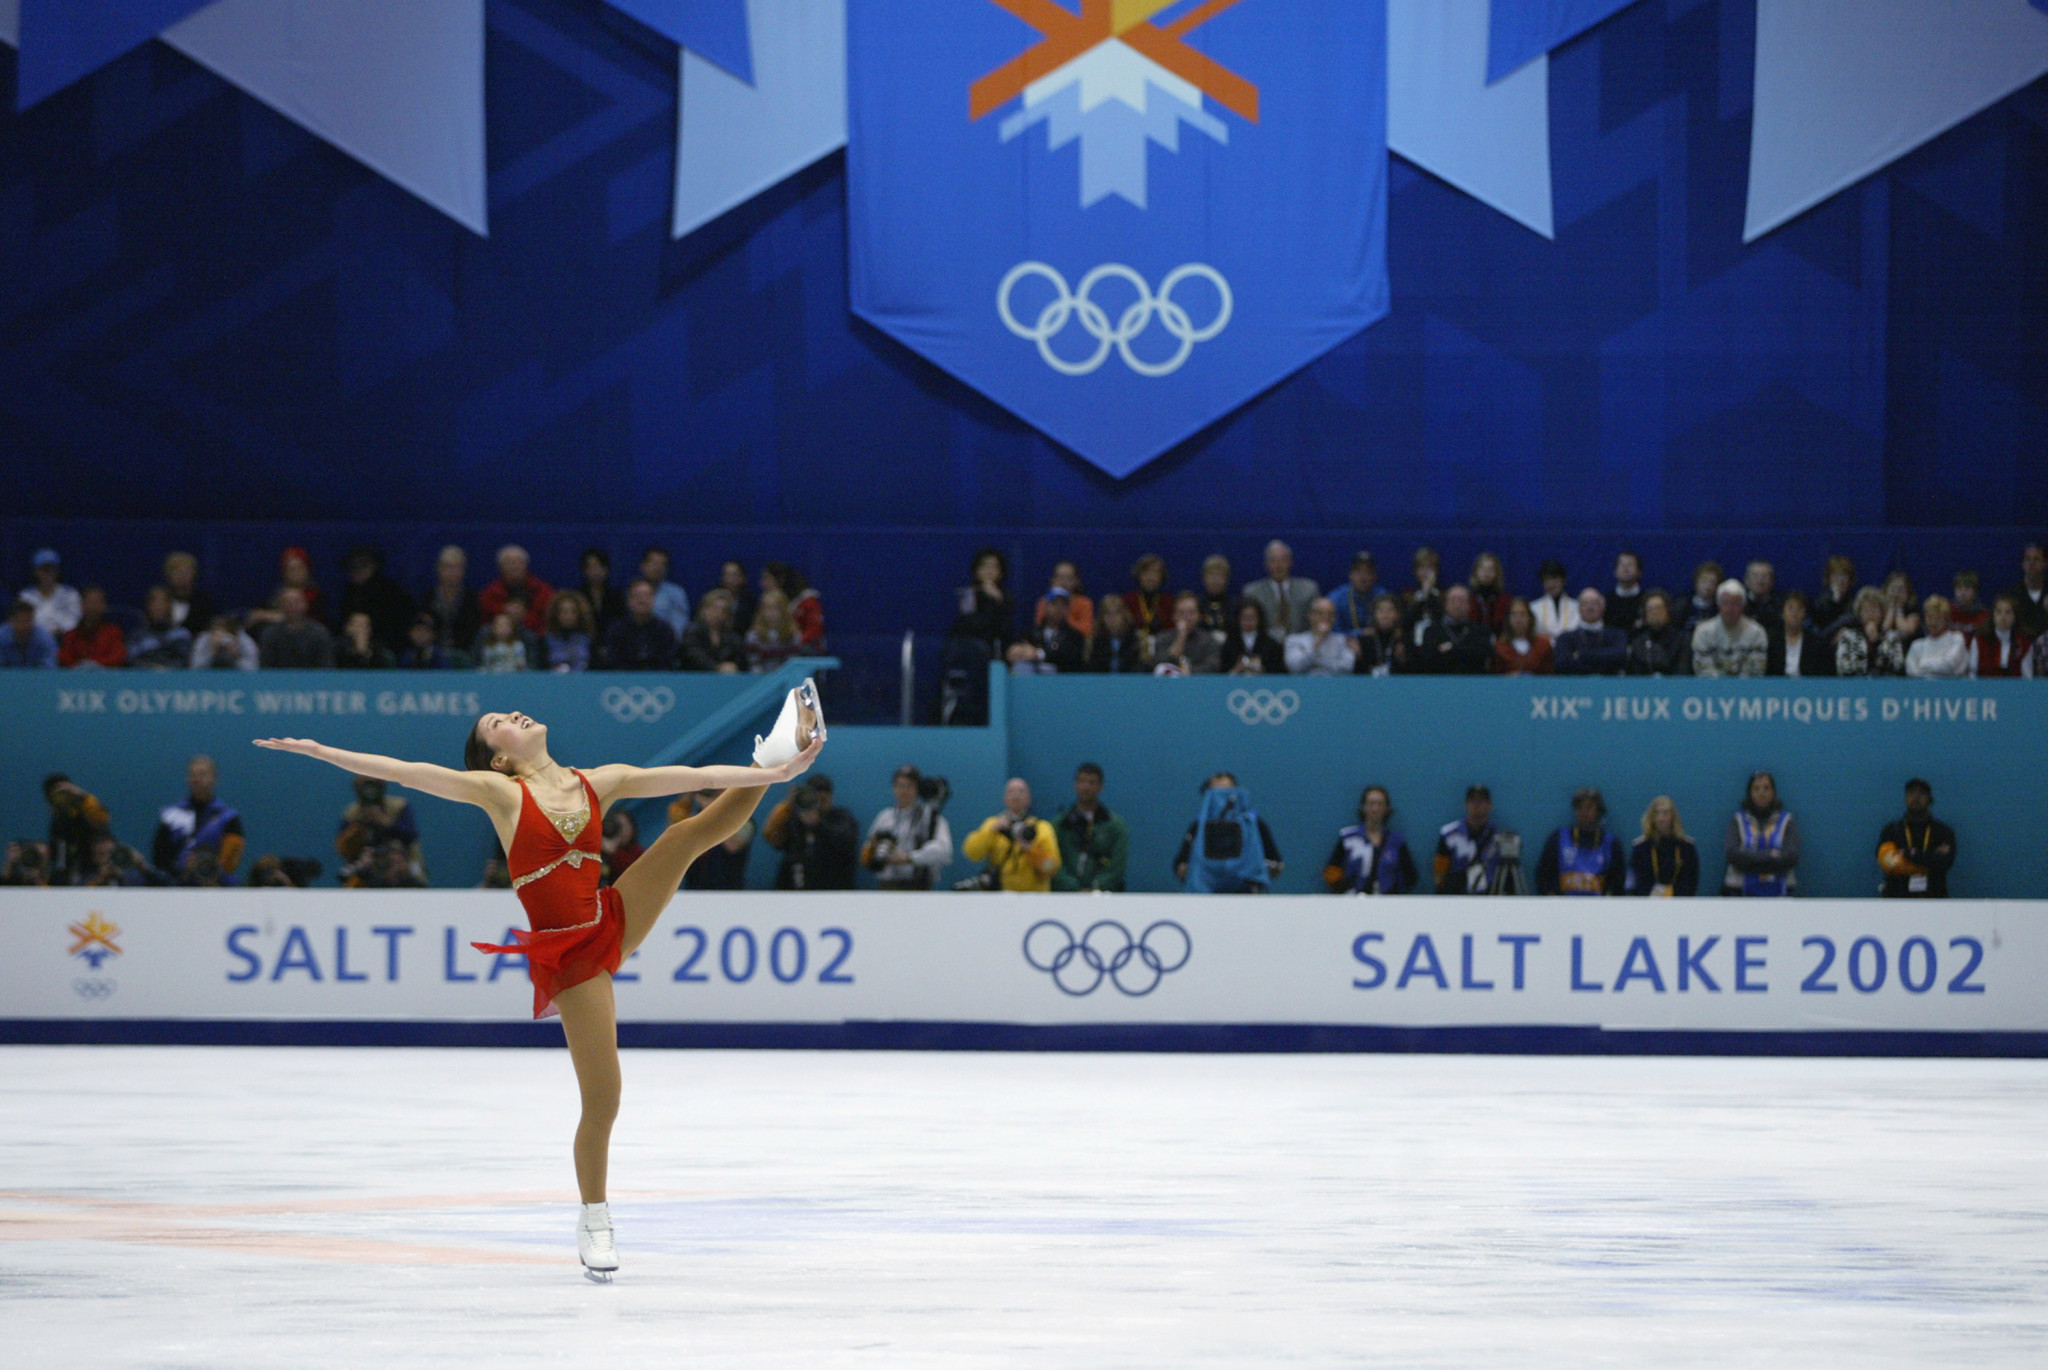 Salt Lake City had been considering a fresh bid for the Winter Olympic and Paralympic Games having been the last United States city to stage them in 2002 ©Getty Images